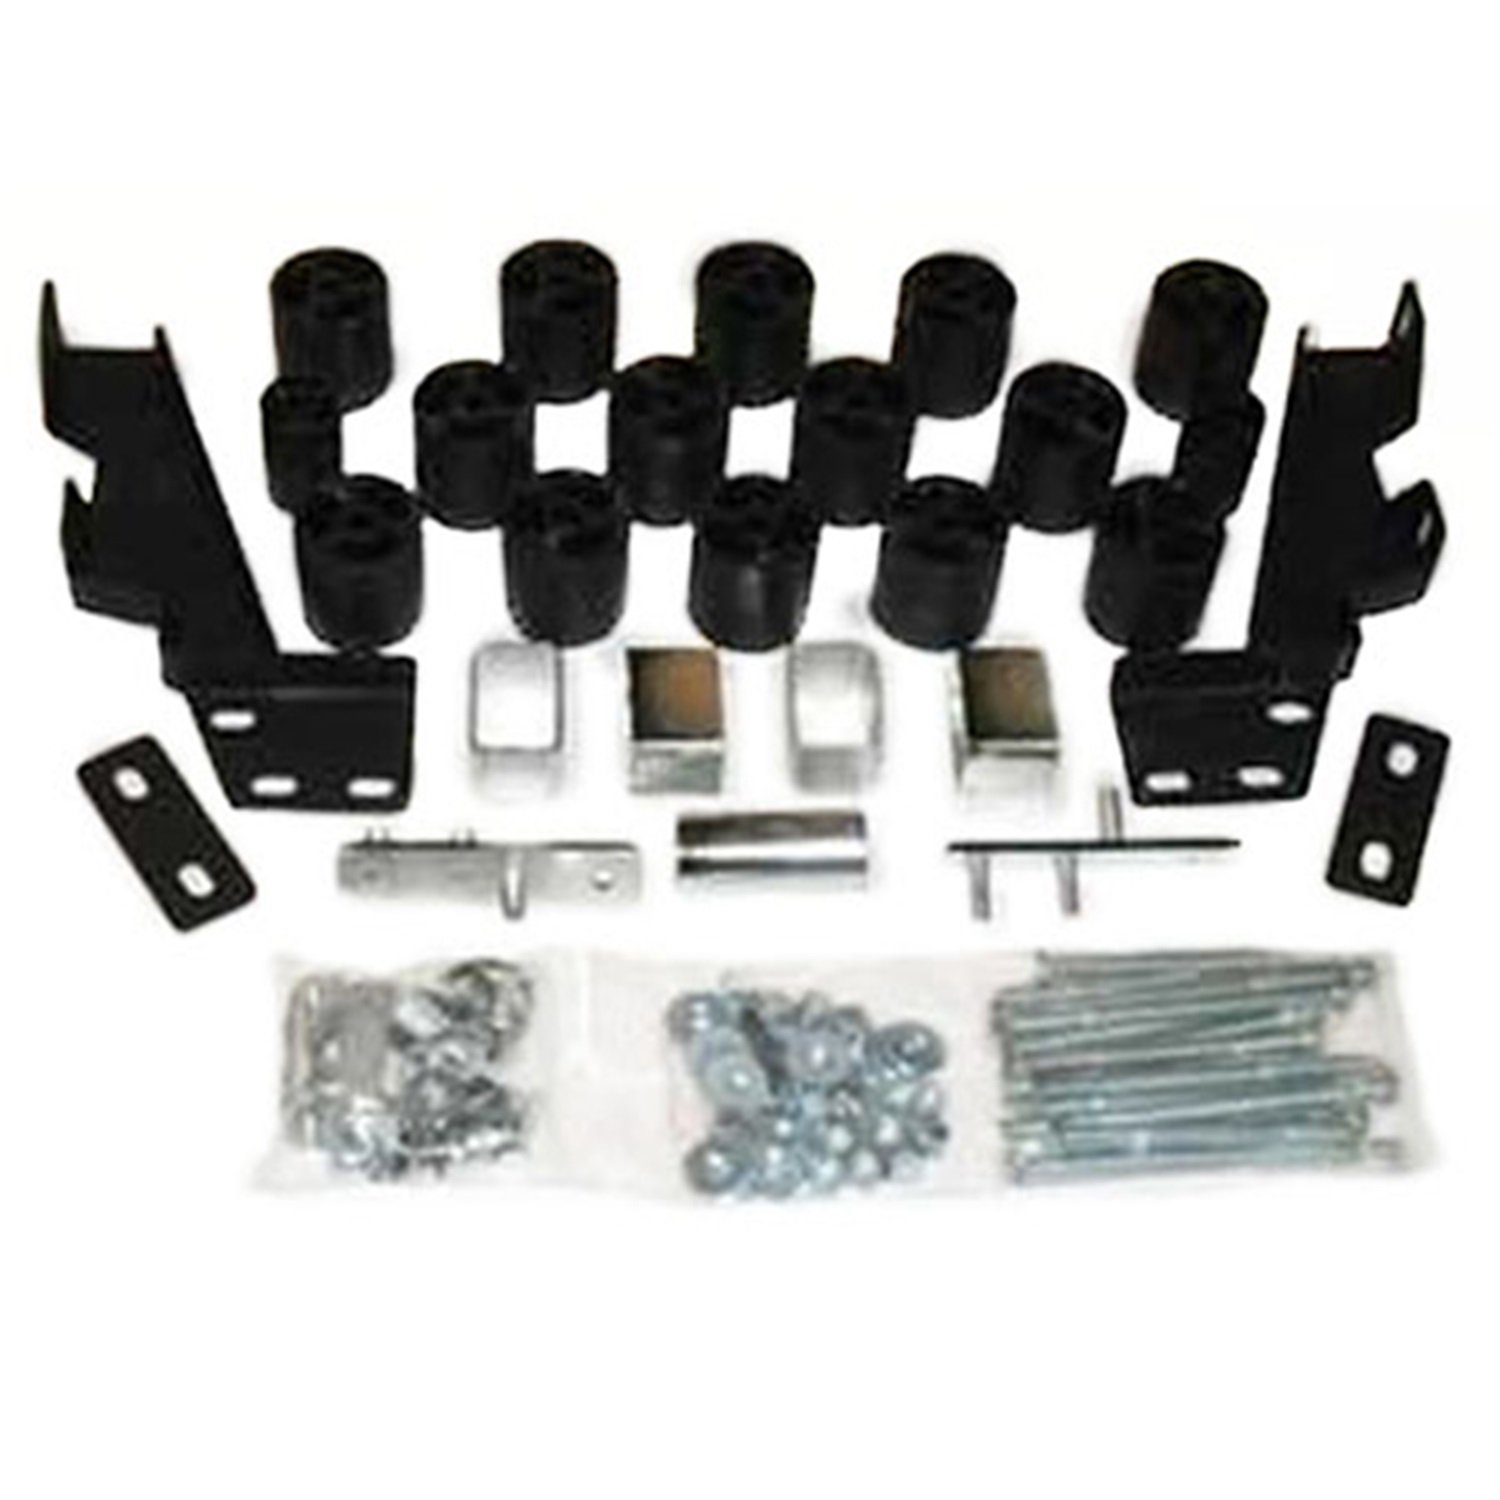 fits 1999 to 2001 Except 2000 Auto Trans 3 Body Lift Kit Dodge Ram Pickup Gas Sport Only, PA60013 Except 2000 Auto Trans Made in America 3 Body Lift Kit Performance Accessories